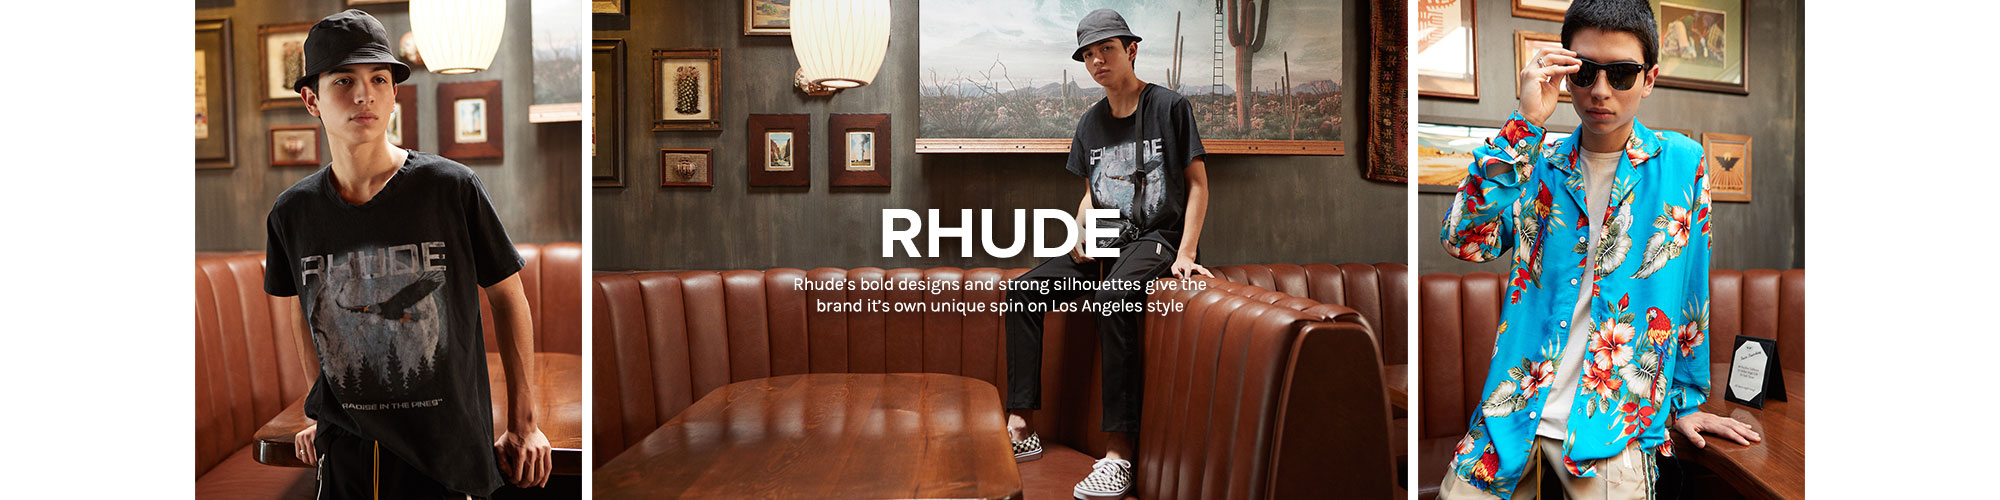 RHUDE. Rhude\u2019s bold designs and strong silhouettes give the brand it\u2019s own unique spin on Los Angeles style.